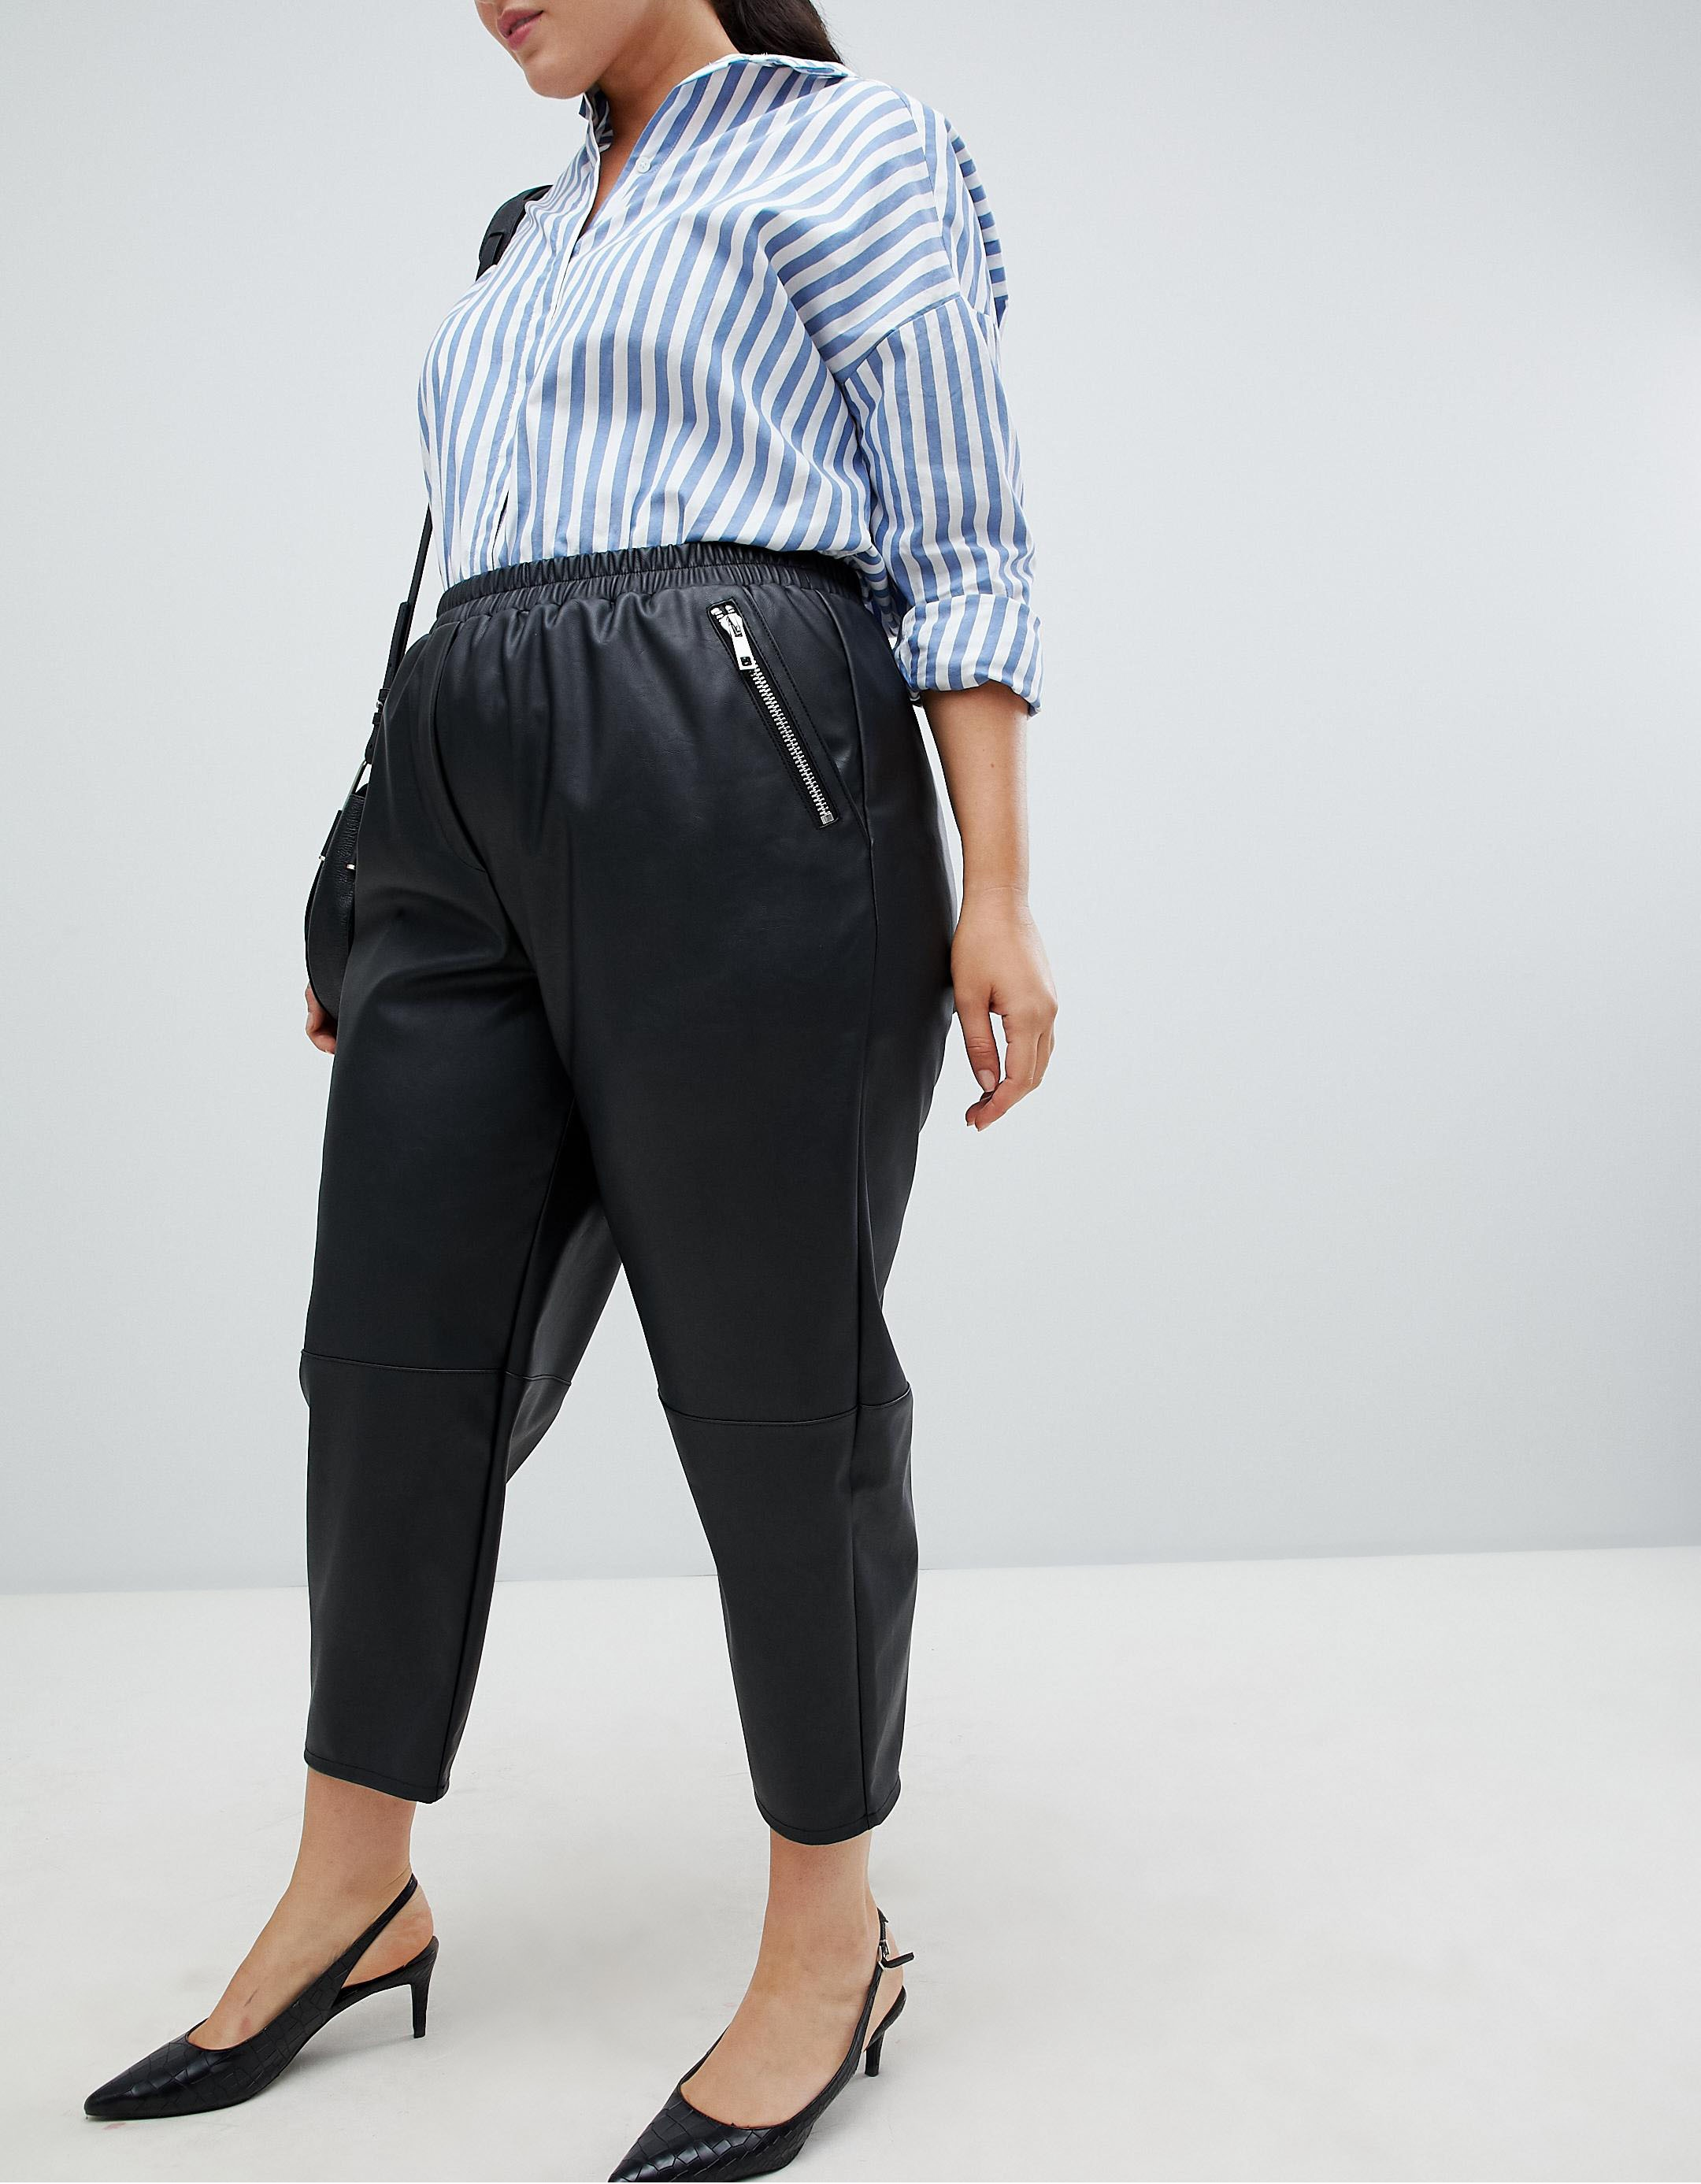 5b3a64e60c ASOS CURVE. Curve Tapered Leather Look Pants. $56.00. BUY. 4 of 21